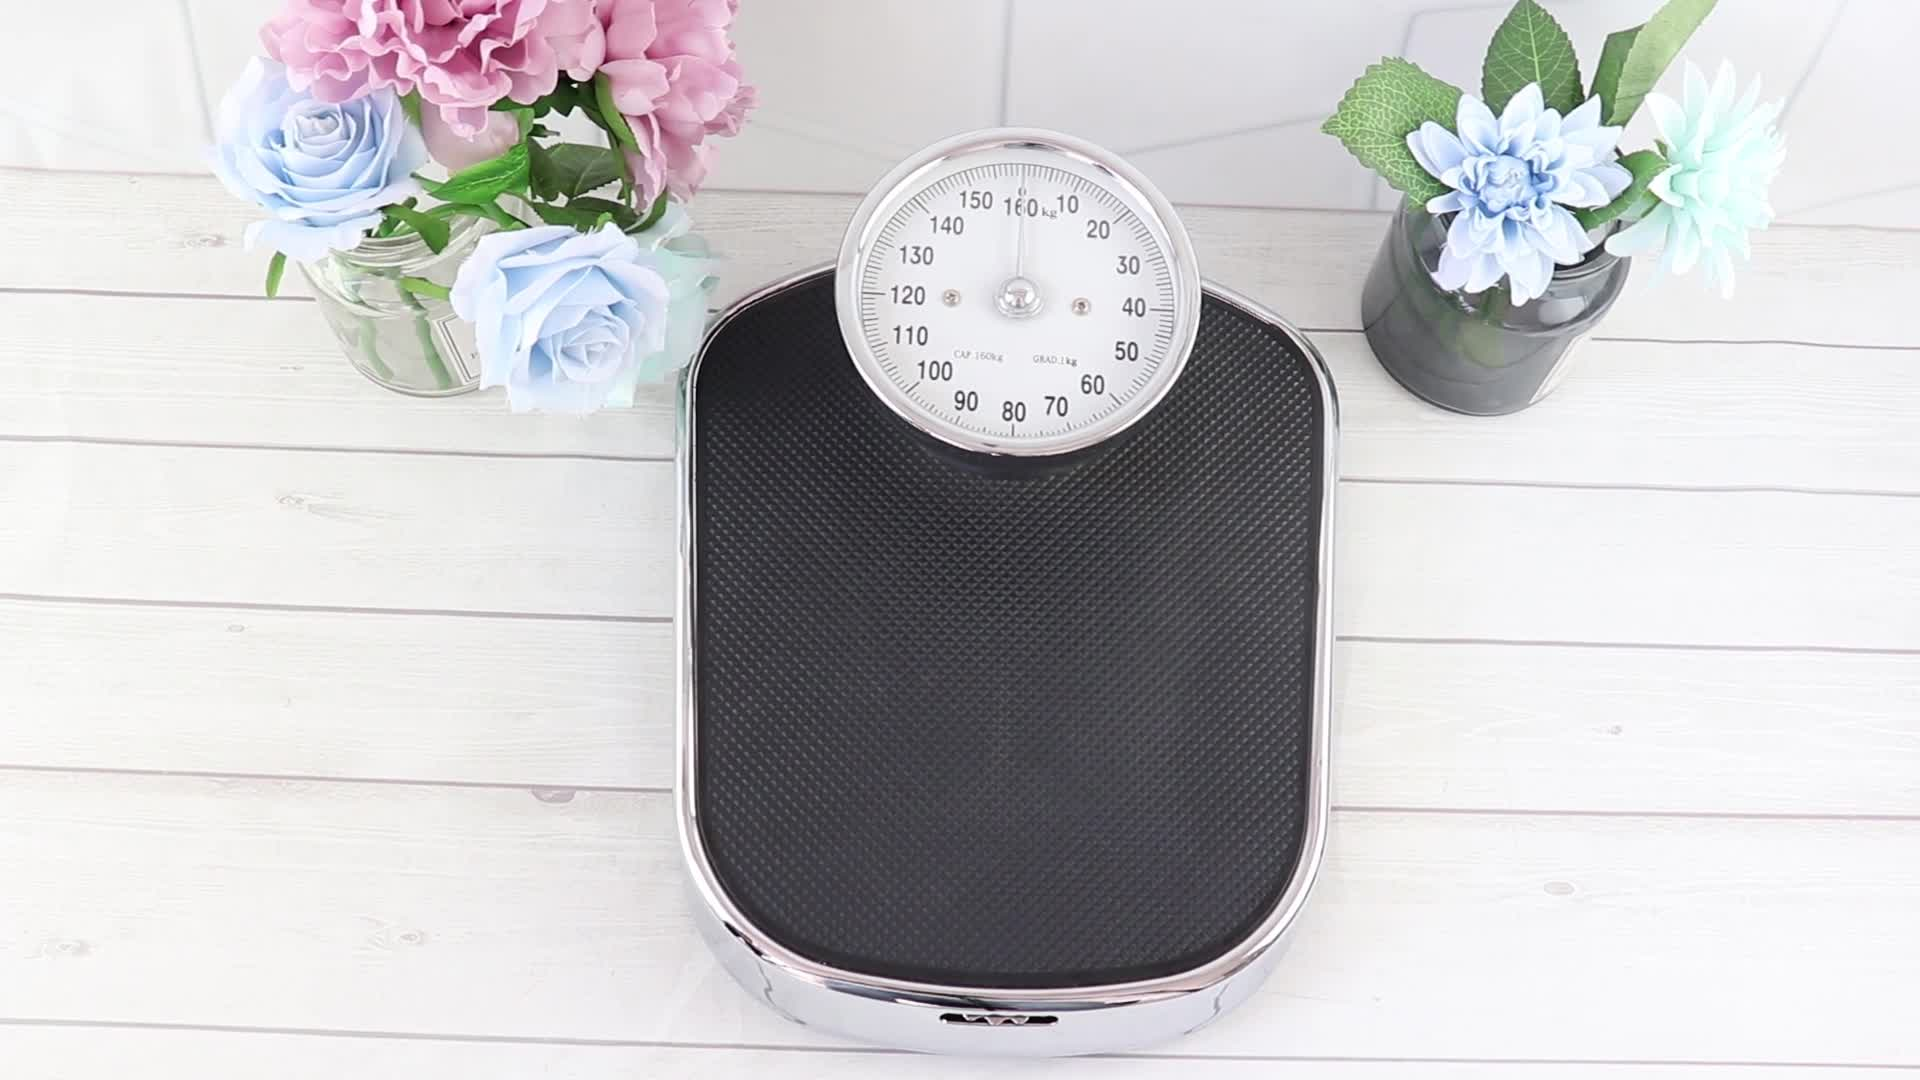 160kg Anti-slip Surface Mechanical Bathroom Body Weighing Scale Weight Scale Machine Medical personal Scale